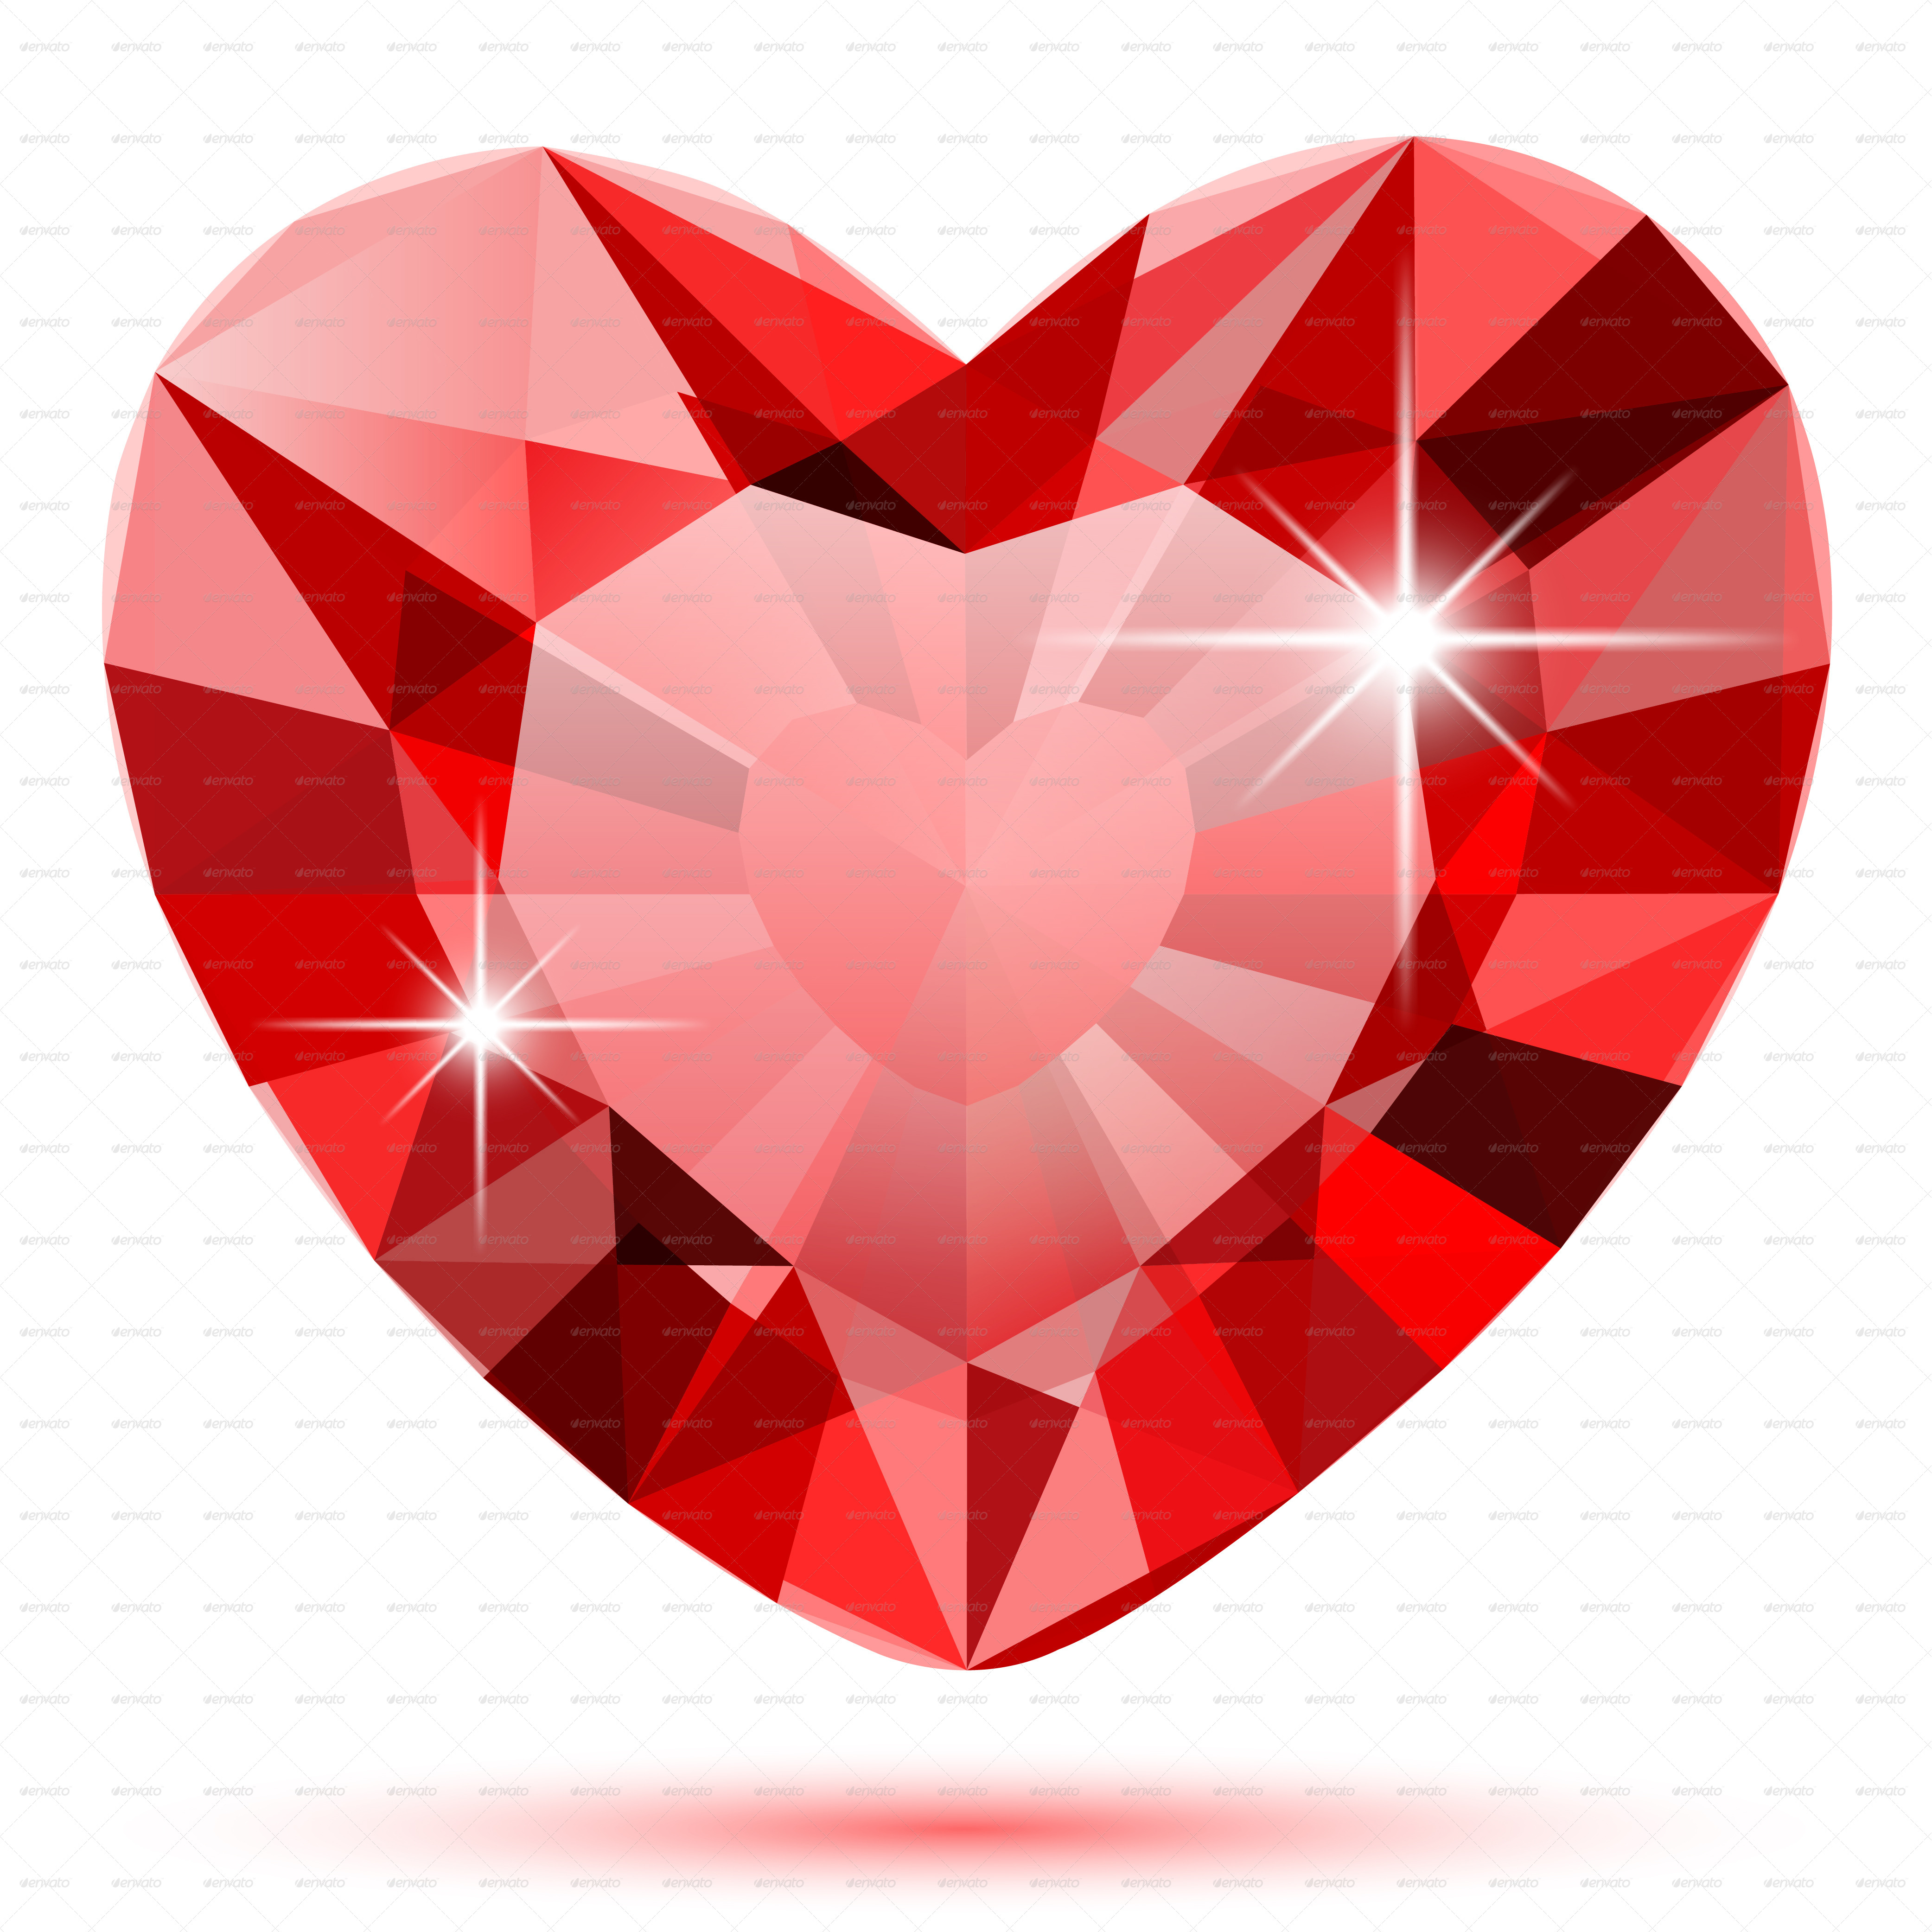 Diamond Heart by Cherkas | GraphicRiver